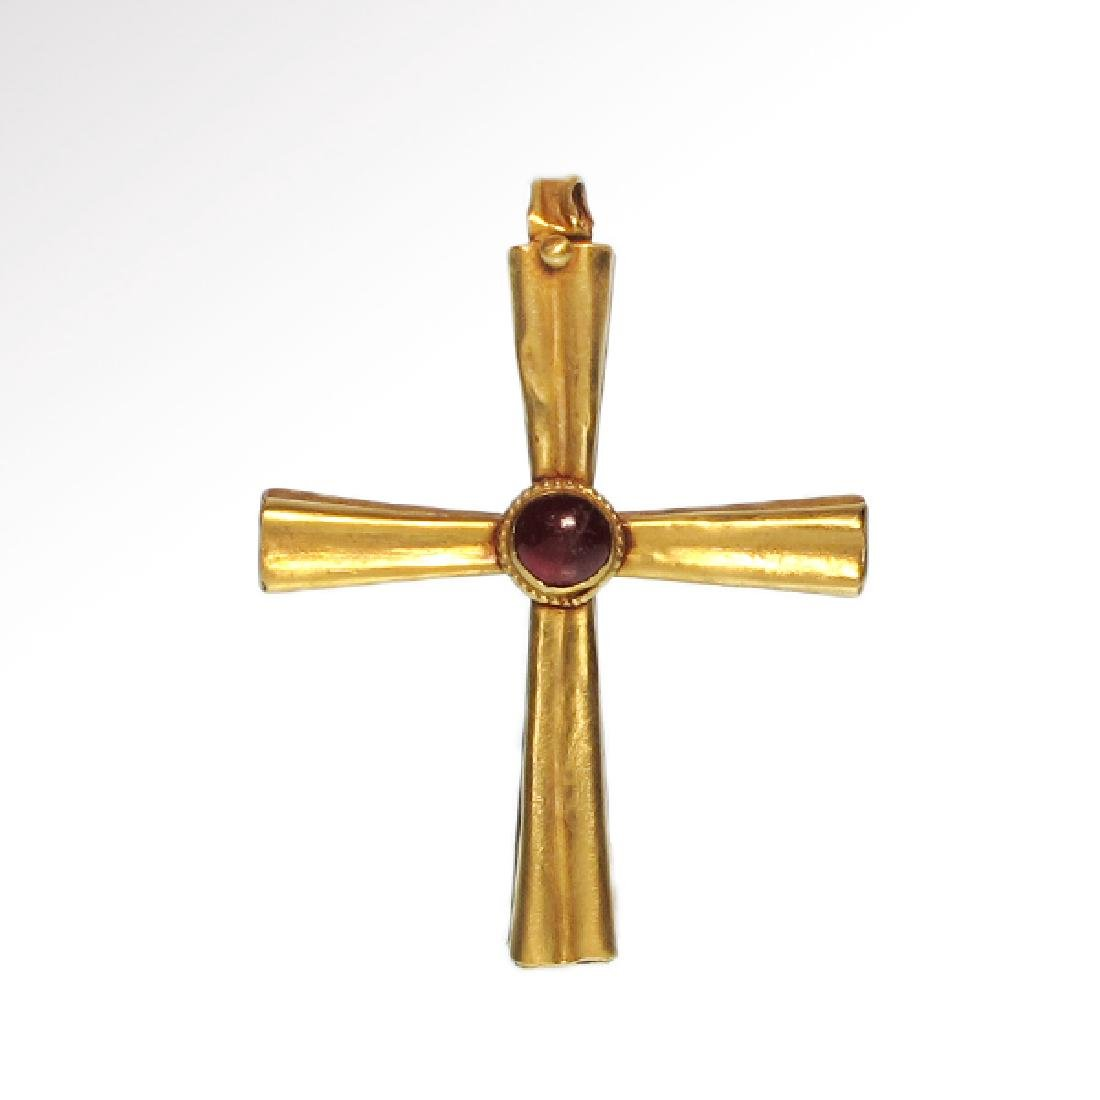 Byzantine Gold and Garnet Cross, 10th-12th Century A.D.